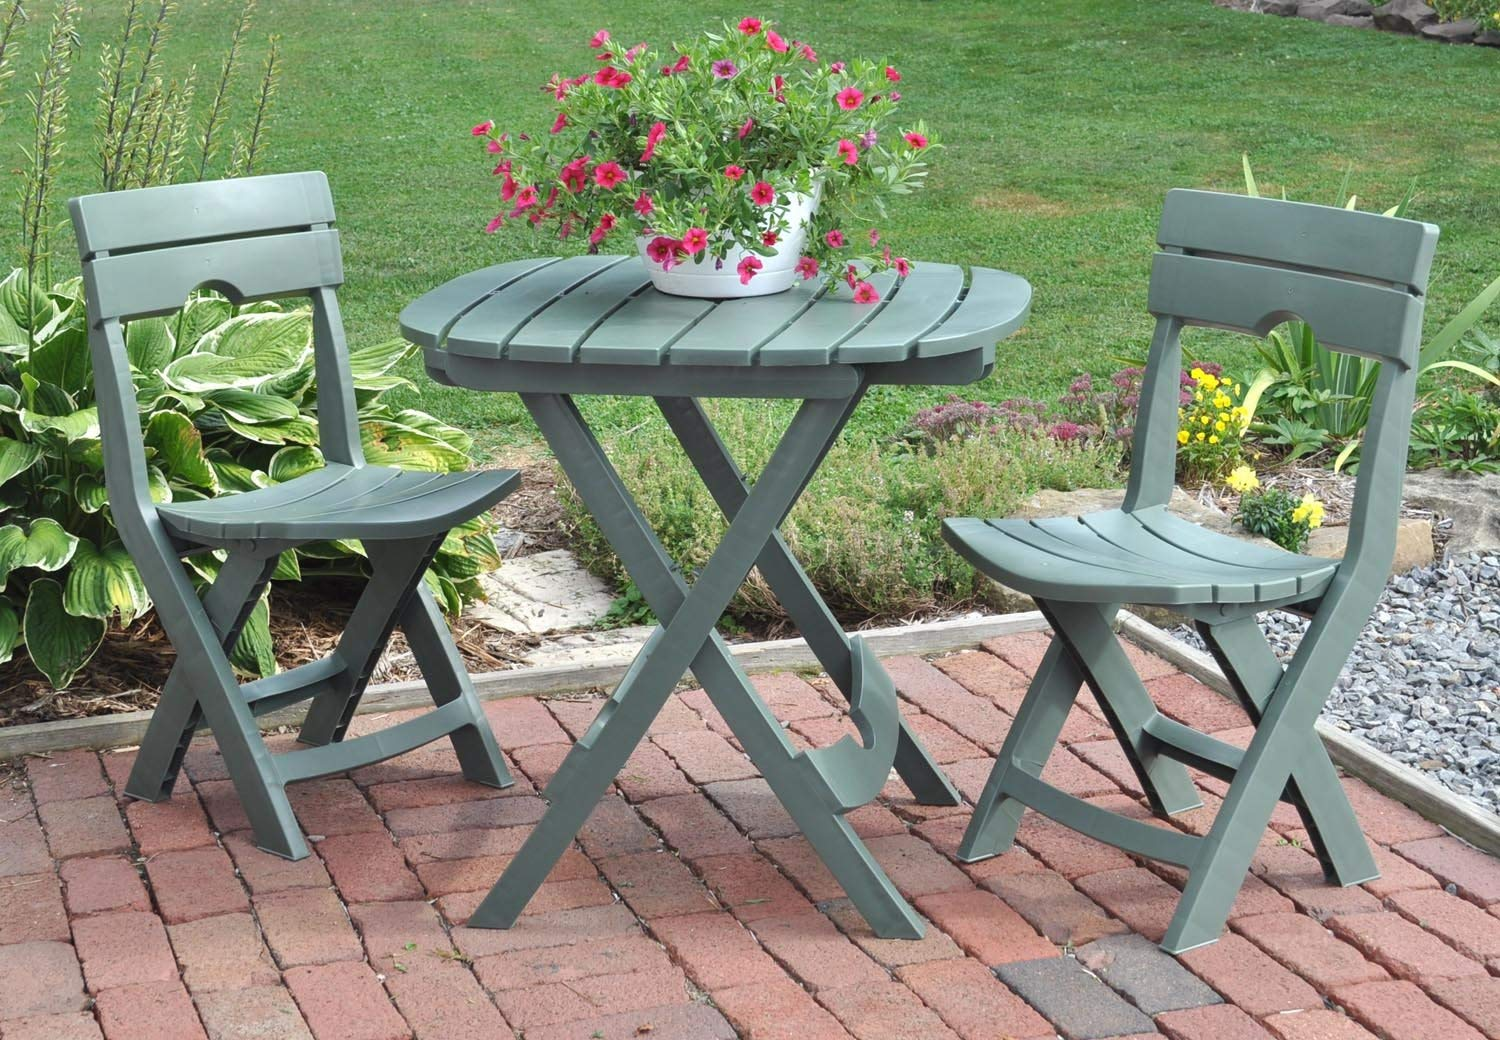 Bistro Sets amazon.com : adams manufacturing 8590-01-3731 quik-fold cafe bistro set,  sage : outdoor DZRFTEL